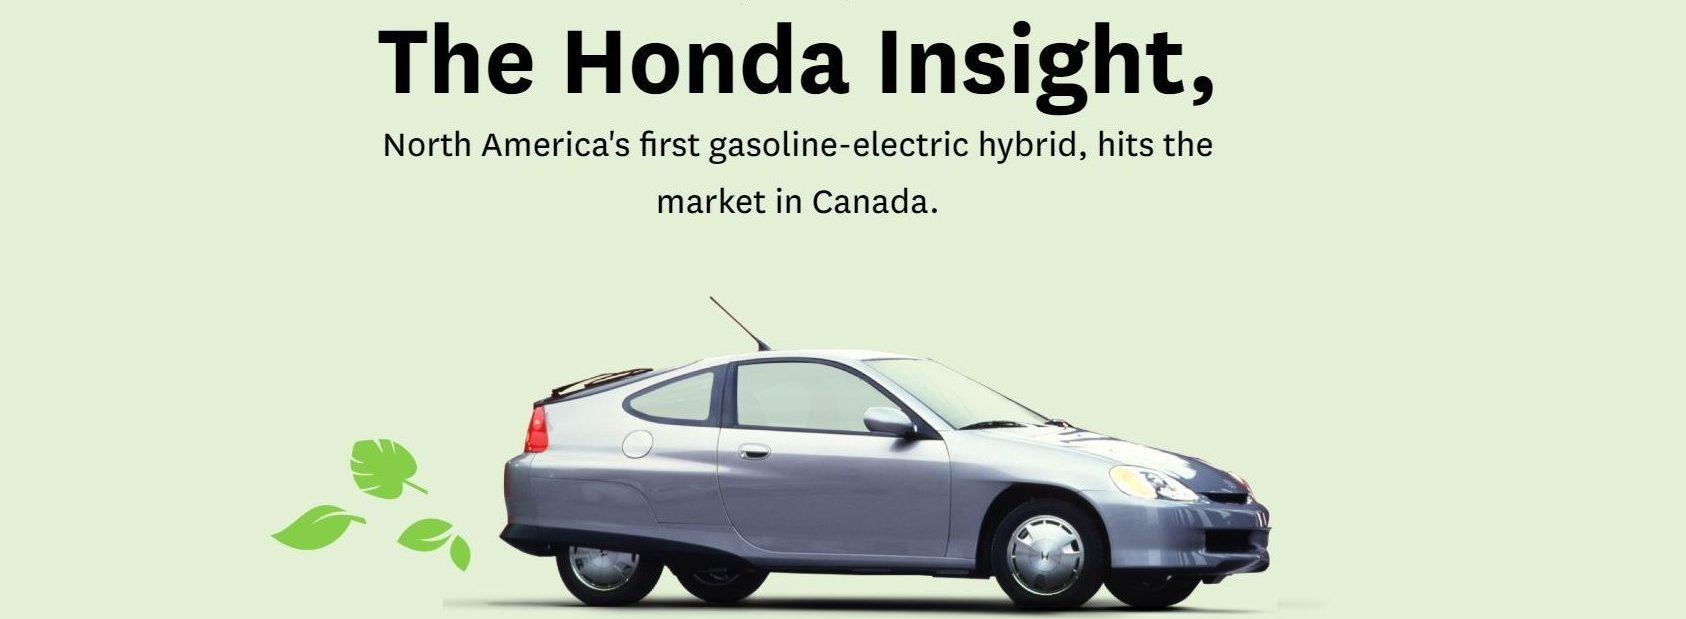 "The Honda Insight with text ""North Americas first gasoline-electric hybrid"""